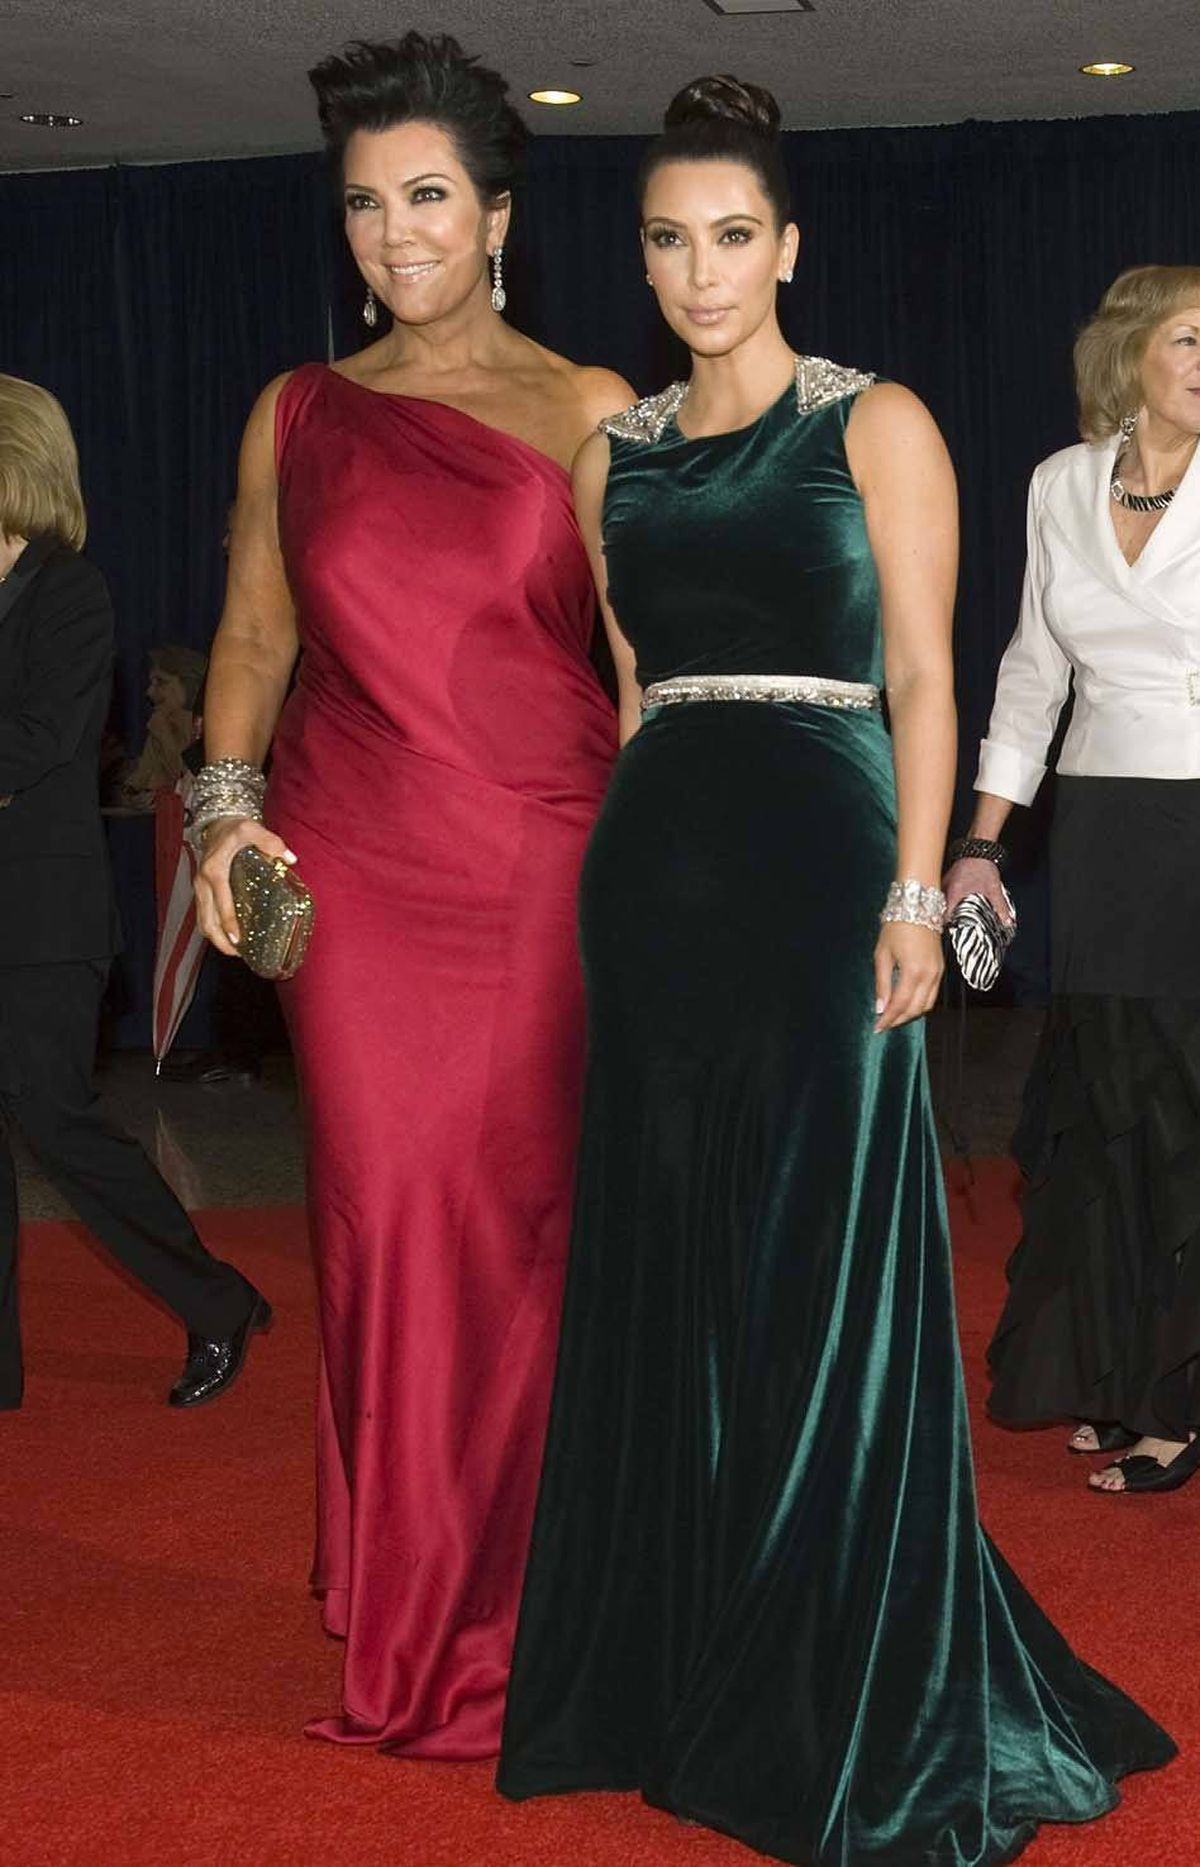 And what kind of serious journalistic gathering would it be without socialite Kris Jenner (left) and her maritally unencumbered daughter Kim Kardashian?